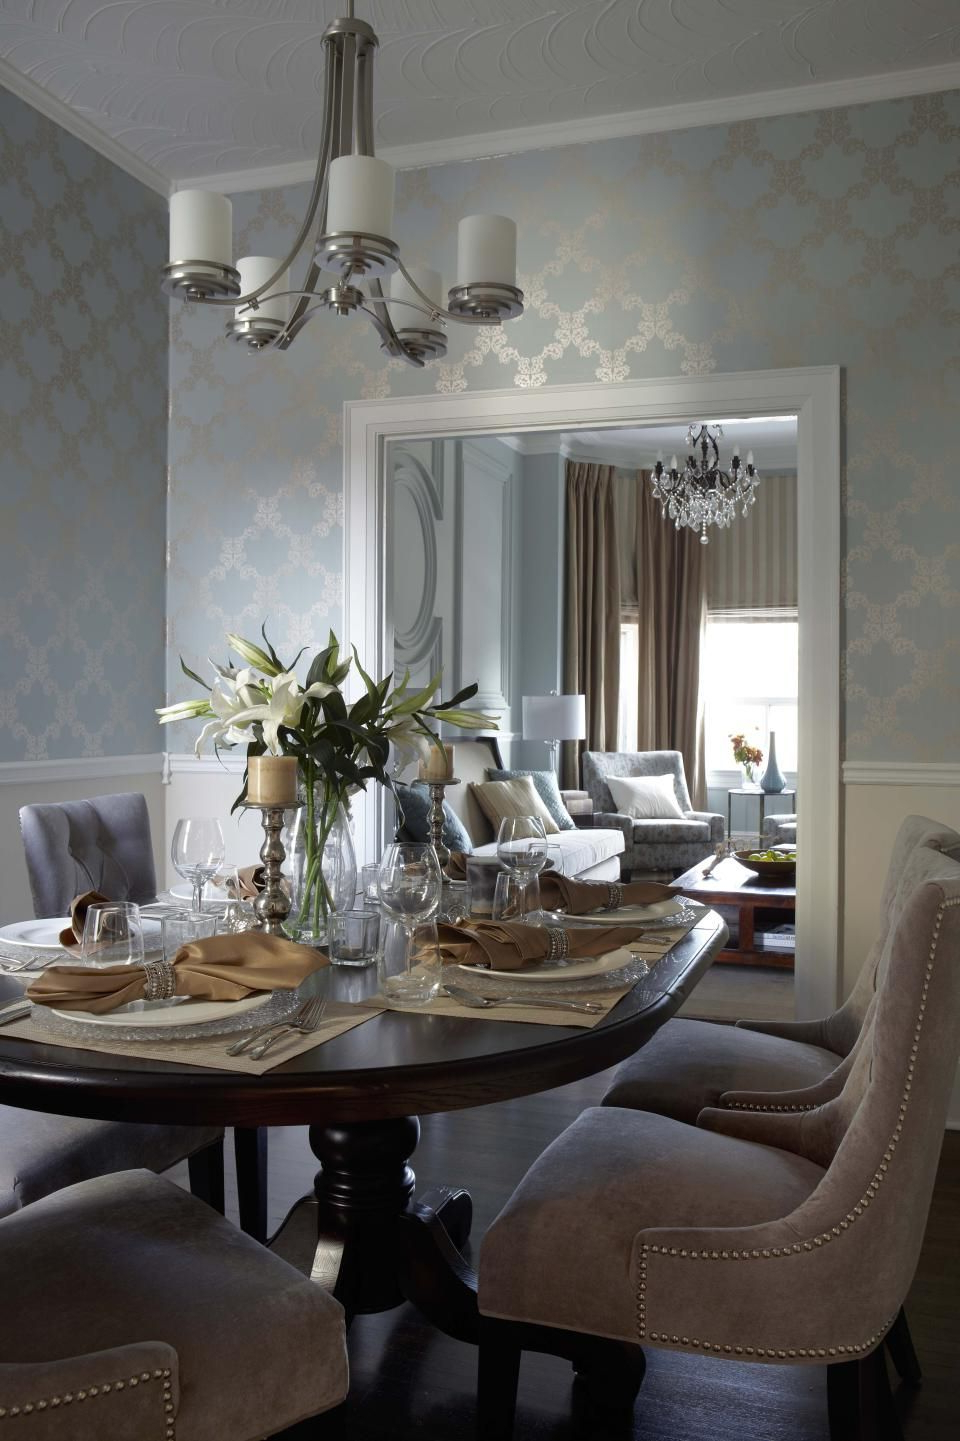 Trendy Shaw Dining Tables, English Brown Regarding Contemporary Transitional French Country Dining Room Design (View 9 of 25)